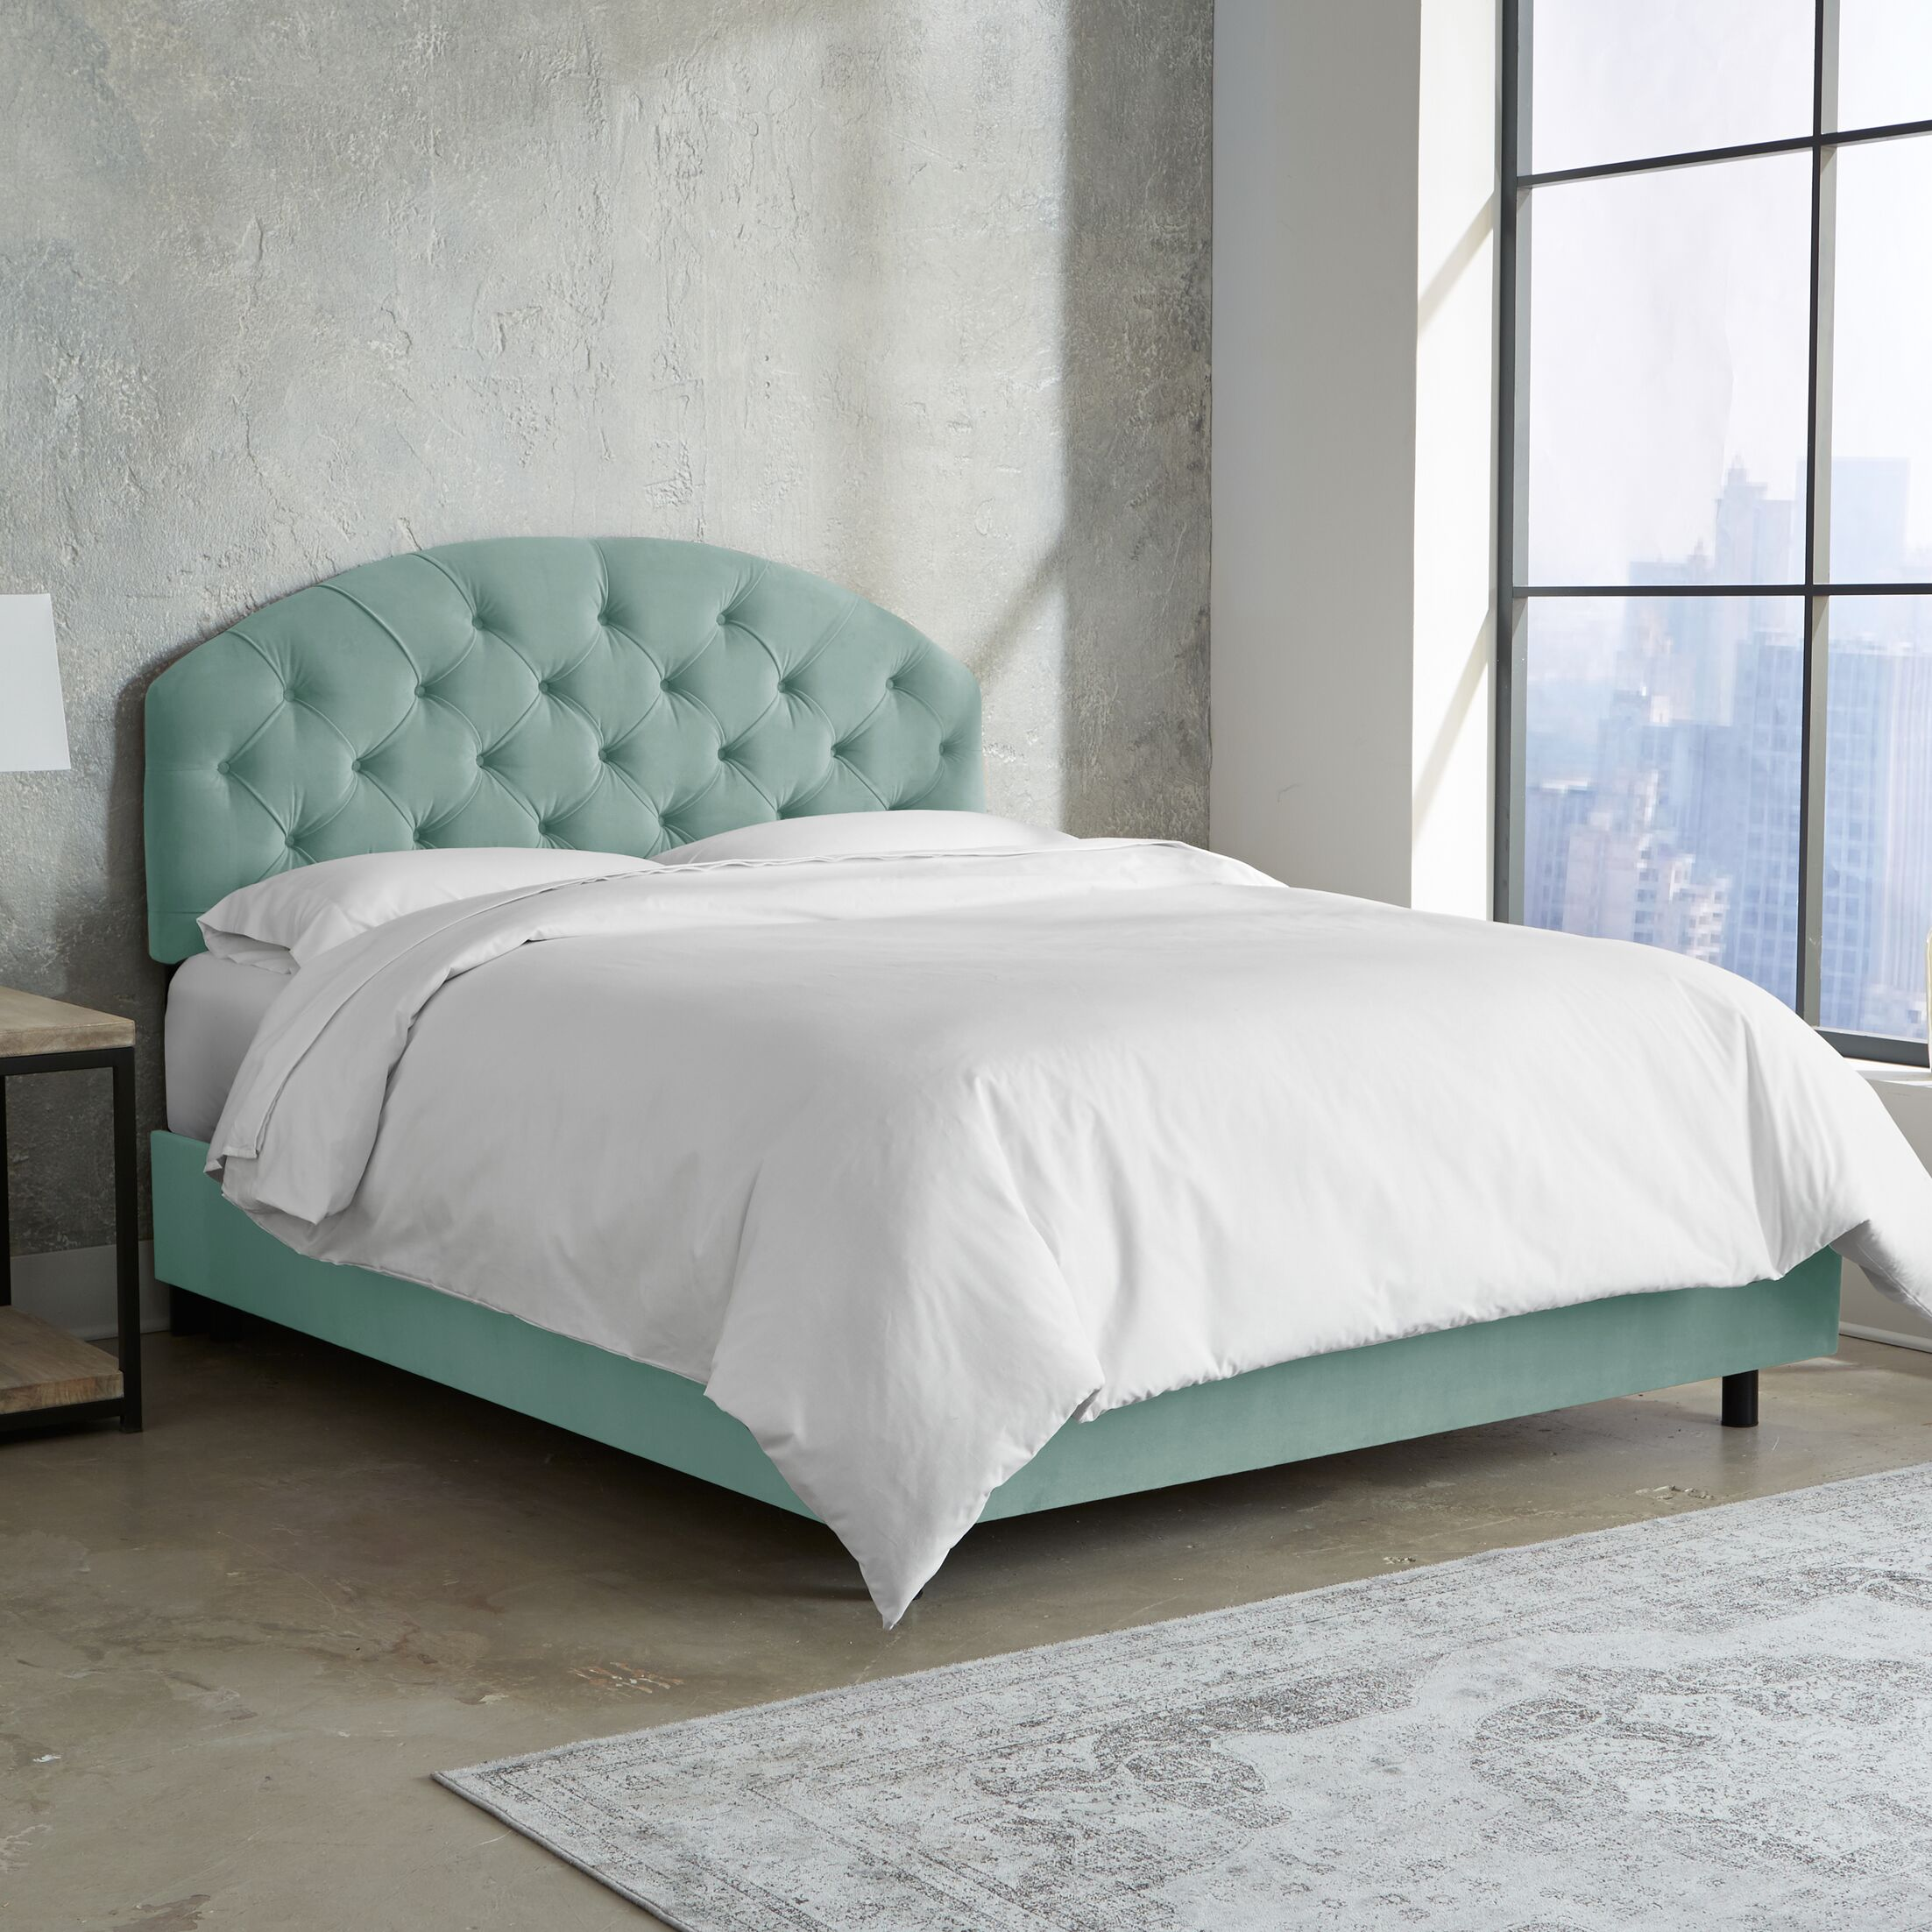 Morvant Tufted Arched Upholstered Panel Bed Size: California King, Color: Caribbean